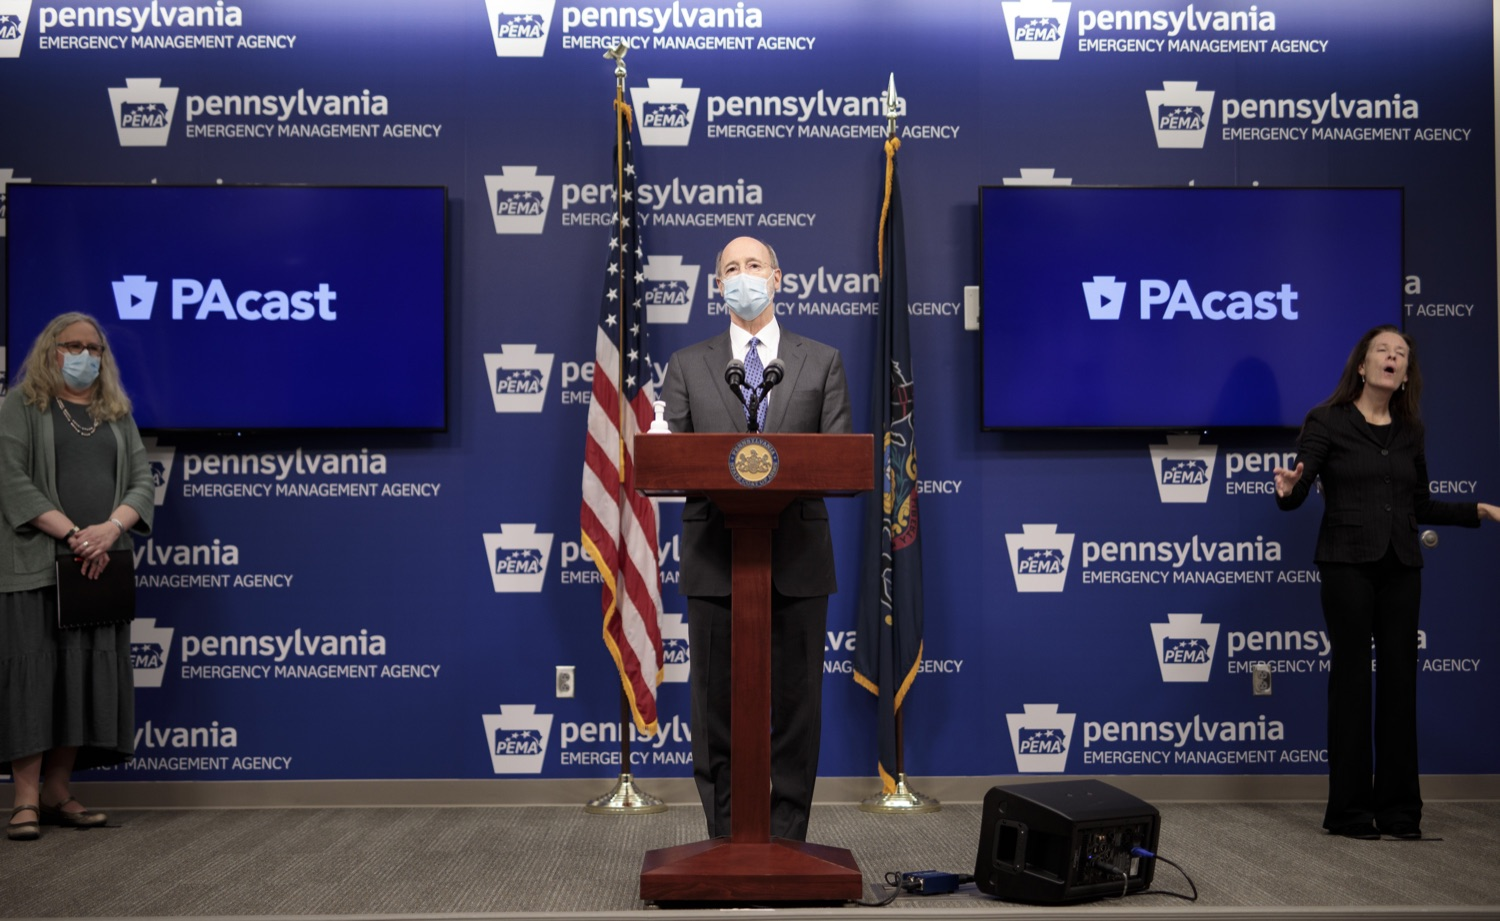 """<a href=""""https://filesource.wostreaming.net/commonwealthofpa/photo/18472_gov_vaccine_dz_08.jpg"""" target=""""_blank"""">⇣Download Photo<br></a>Pennsylvania Governor Tom Wolf speaks at the press conference.  The commonwealths COVID-19 vaccination distribution plan was designed to be fluid and flexible to meet guidance and recommendations from the federal government. Today, Governor Tom Wolf and Secretary of Health Dr. Rachel Levine announced the fourth version of the plan, detailing the updates and how the state is working to ensure safe, swift implementation. Harrisburg, PA  January 8, 2021"""